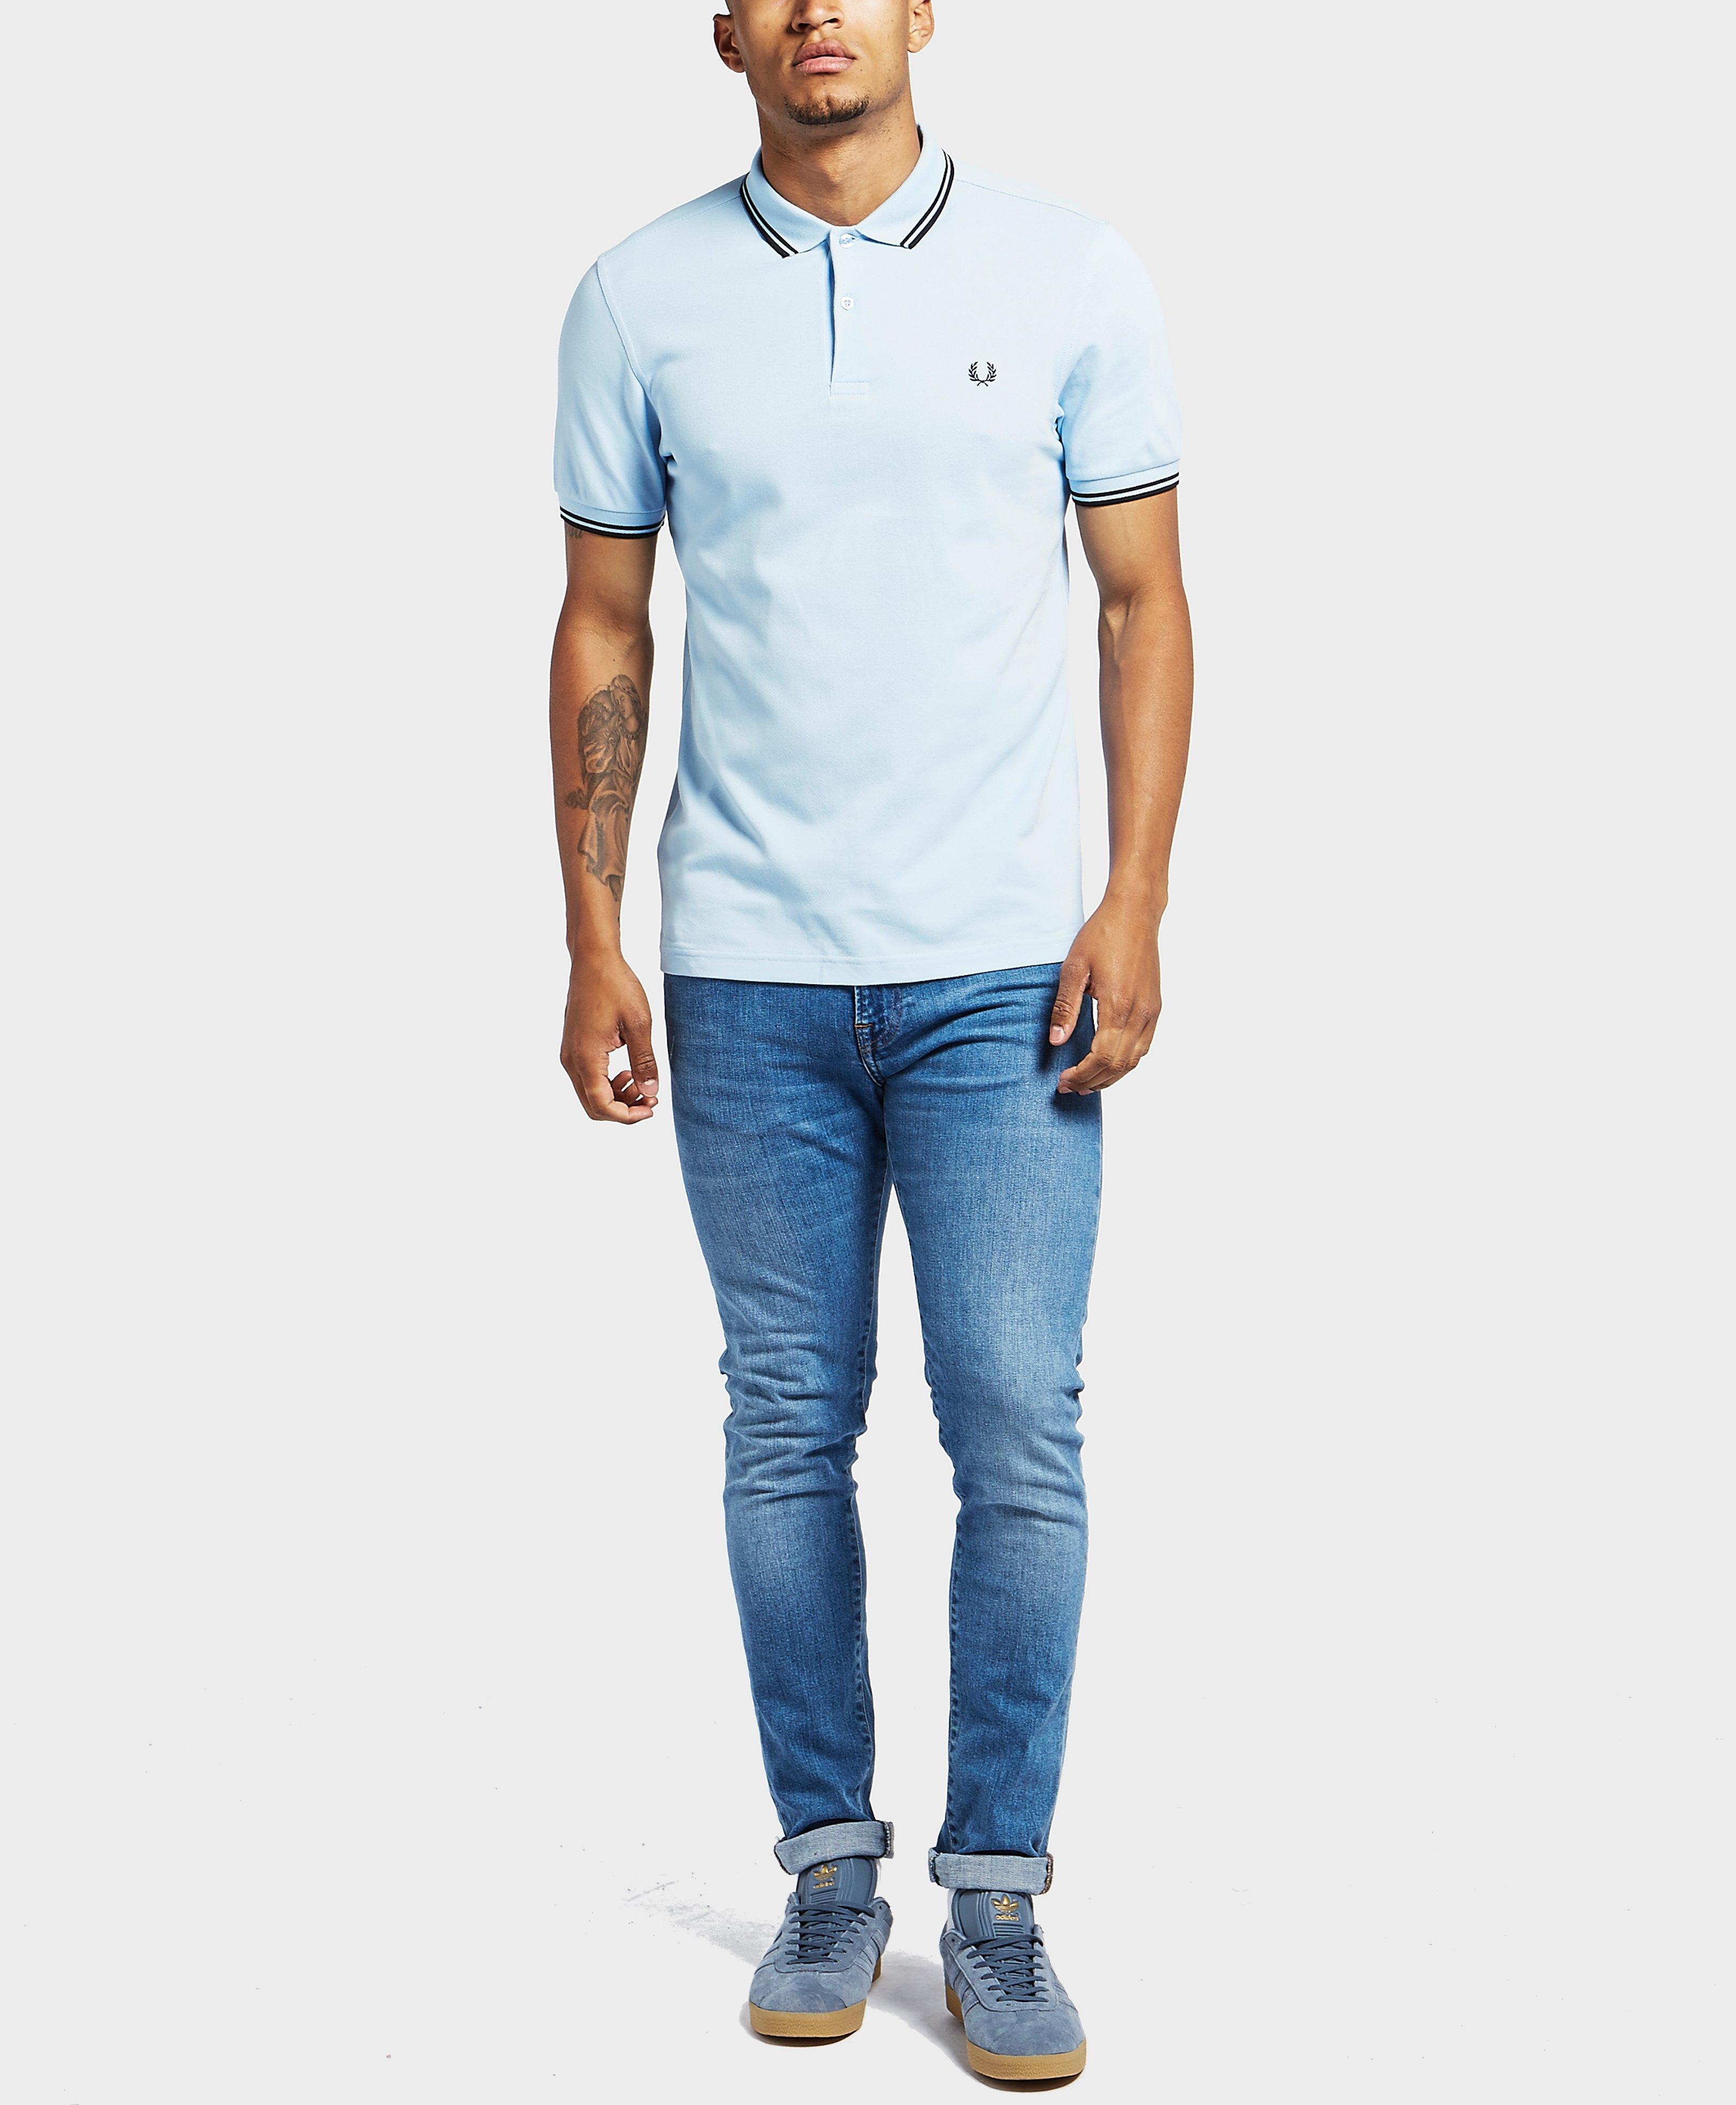 156dc3108 Lyst - Fred Perry Twin Tipped Short Sleeve Polo Shirt in Blue for Men